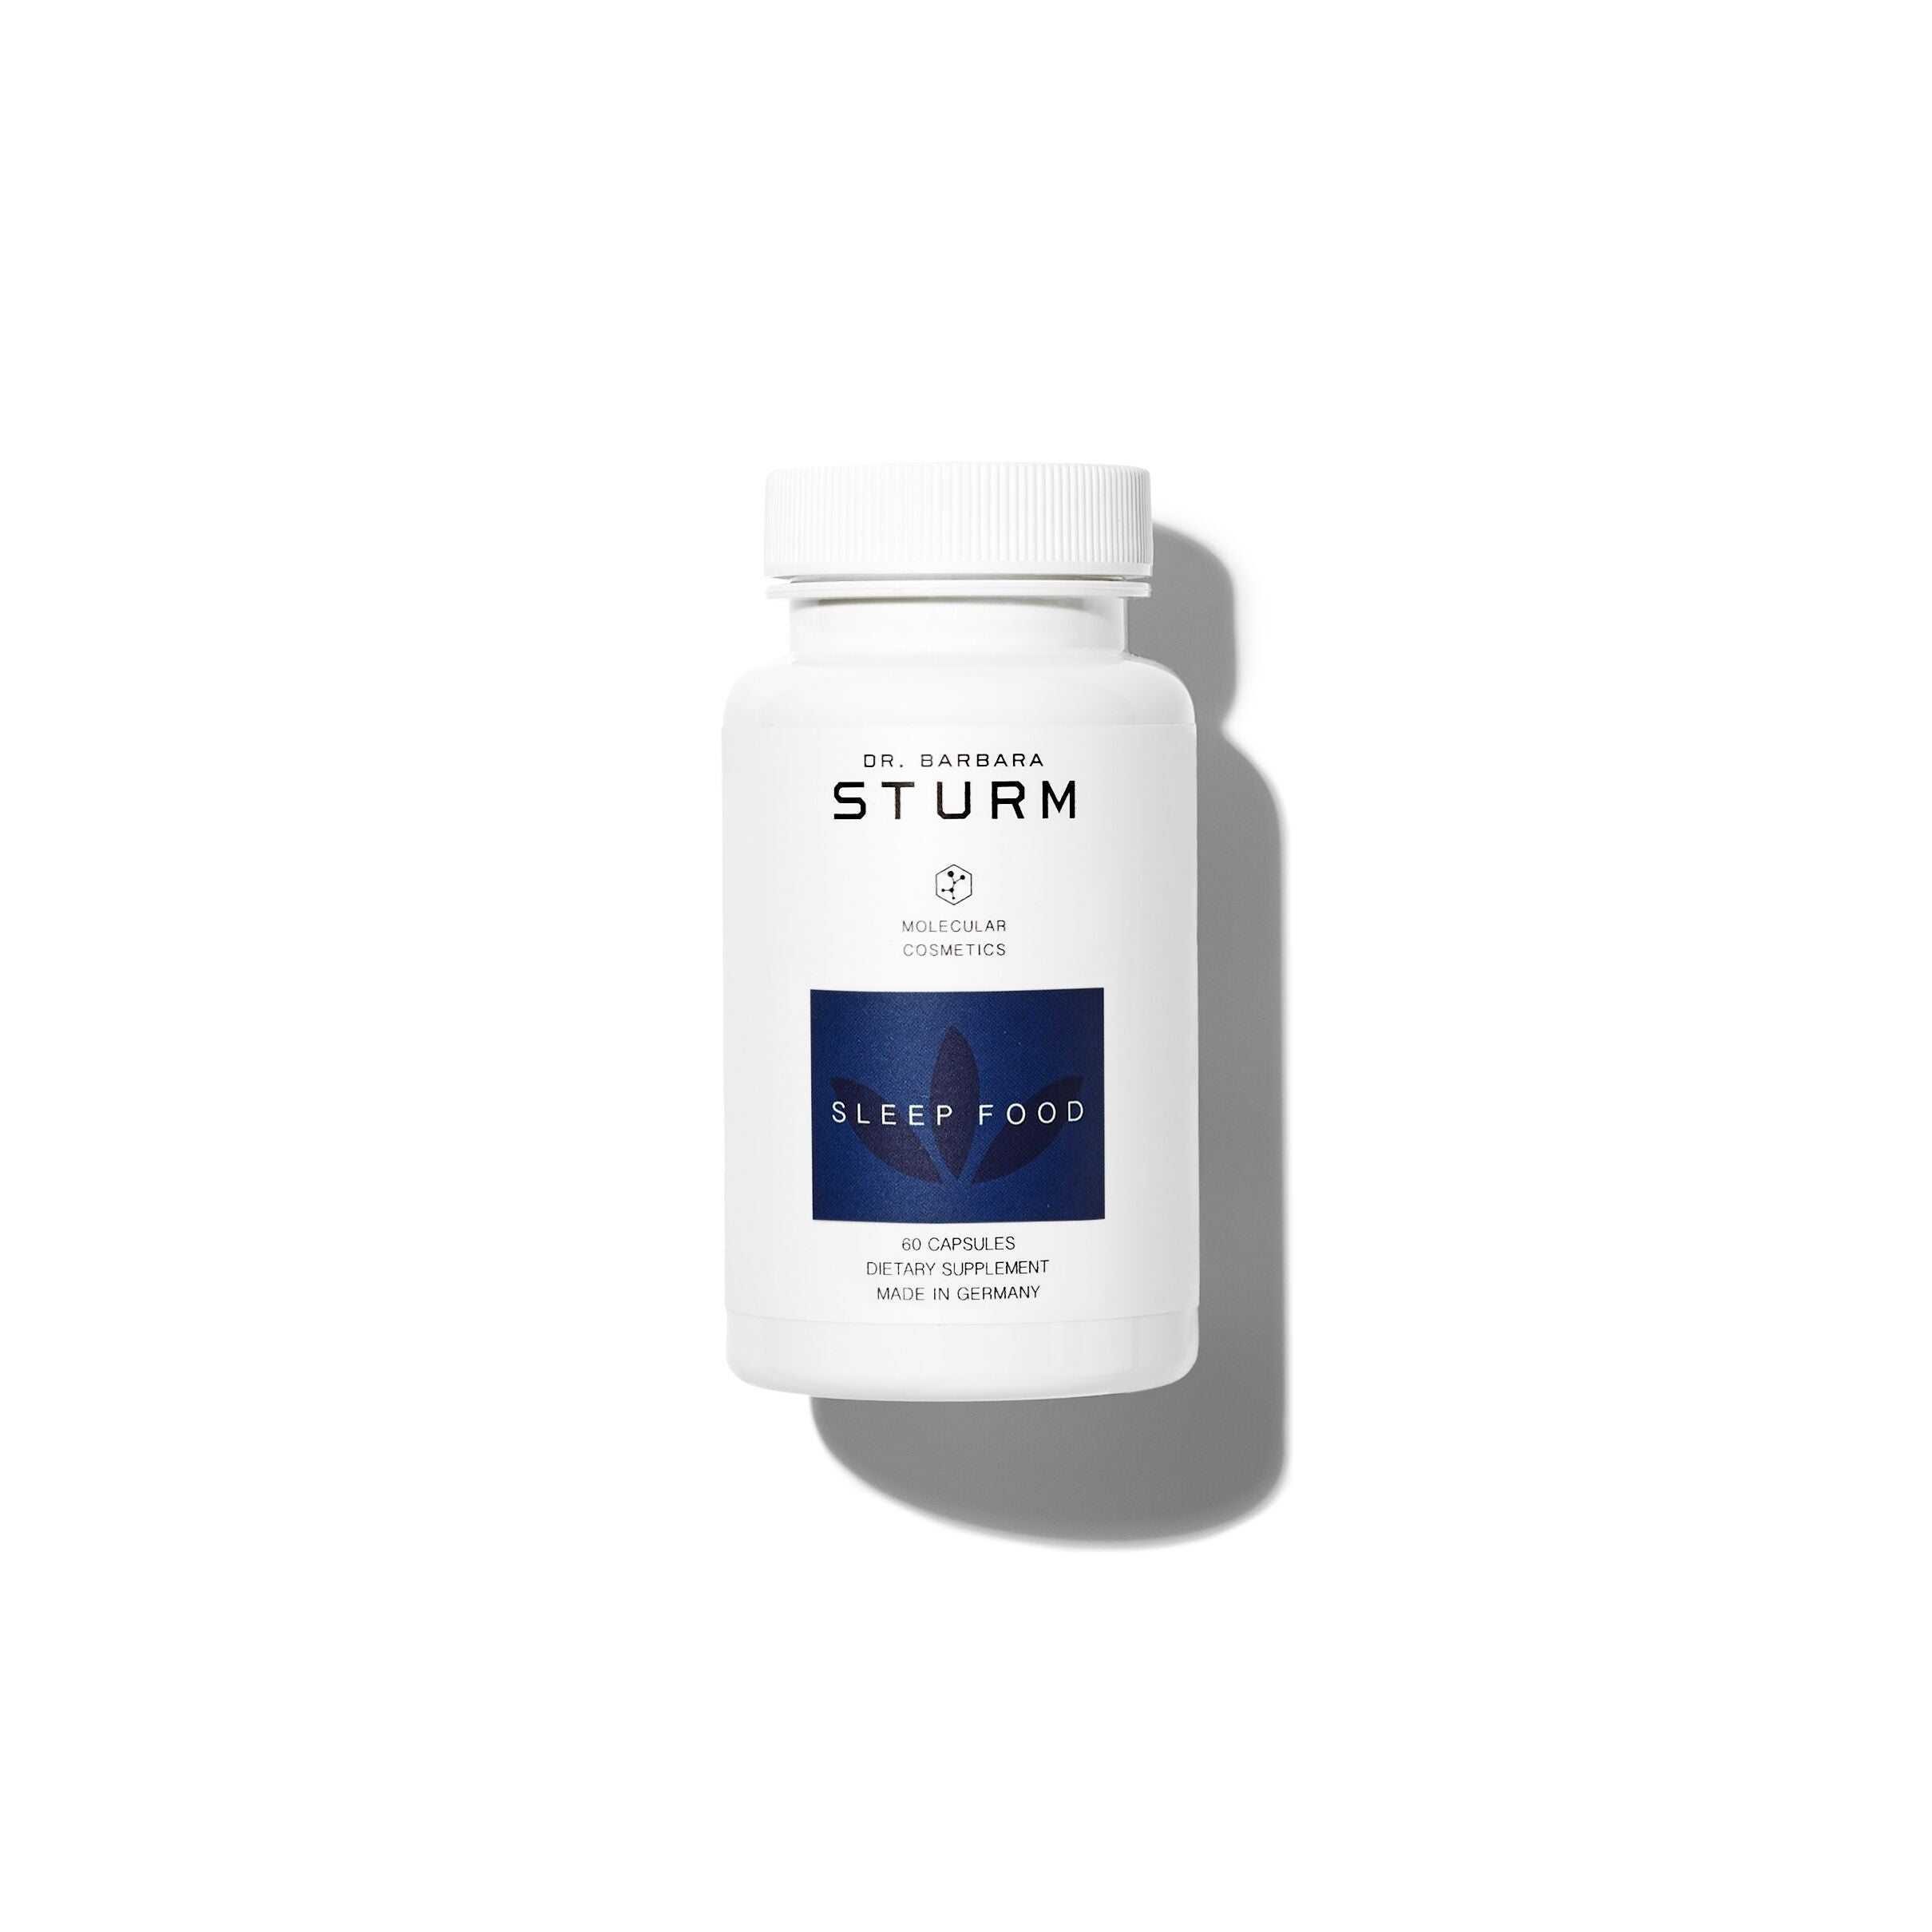 Buy Dr. Babara Sturm Sleep Food wellness products from Delaire Graff Estate online store